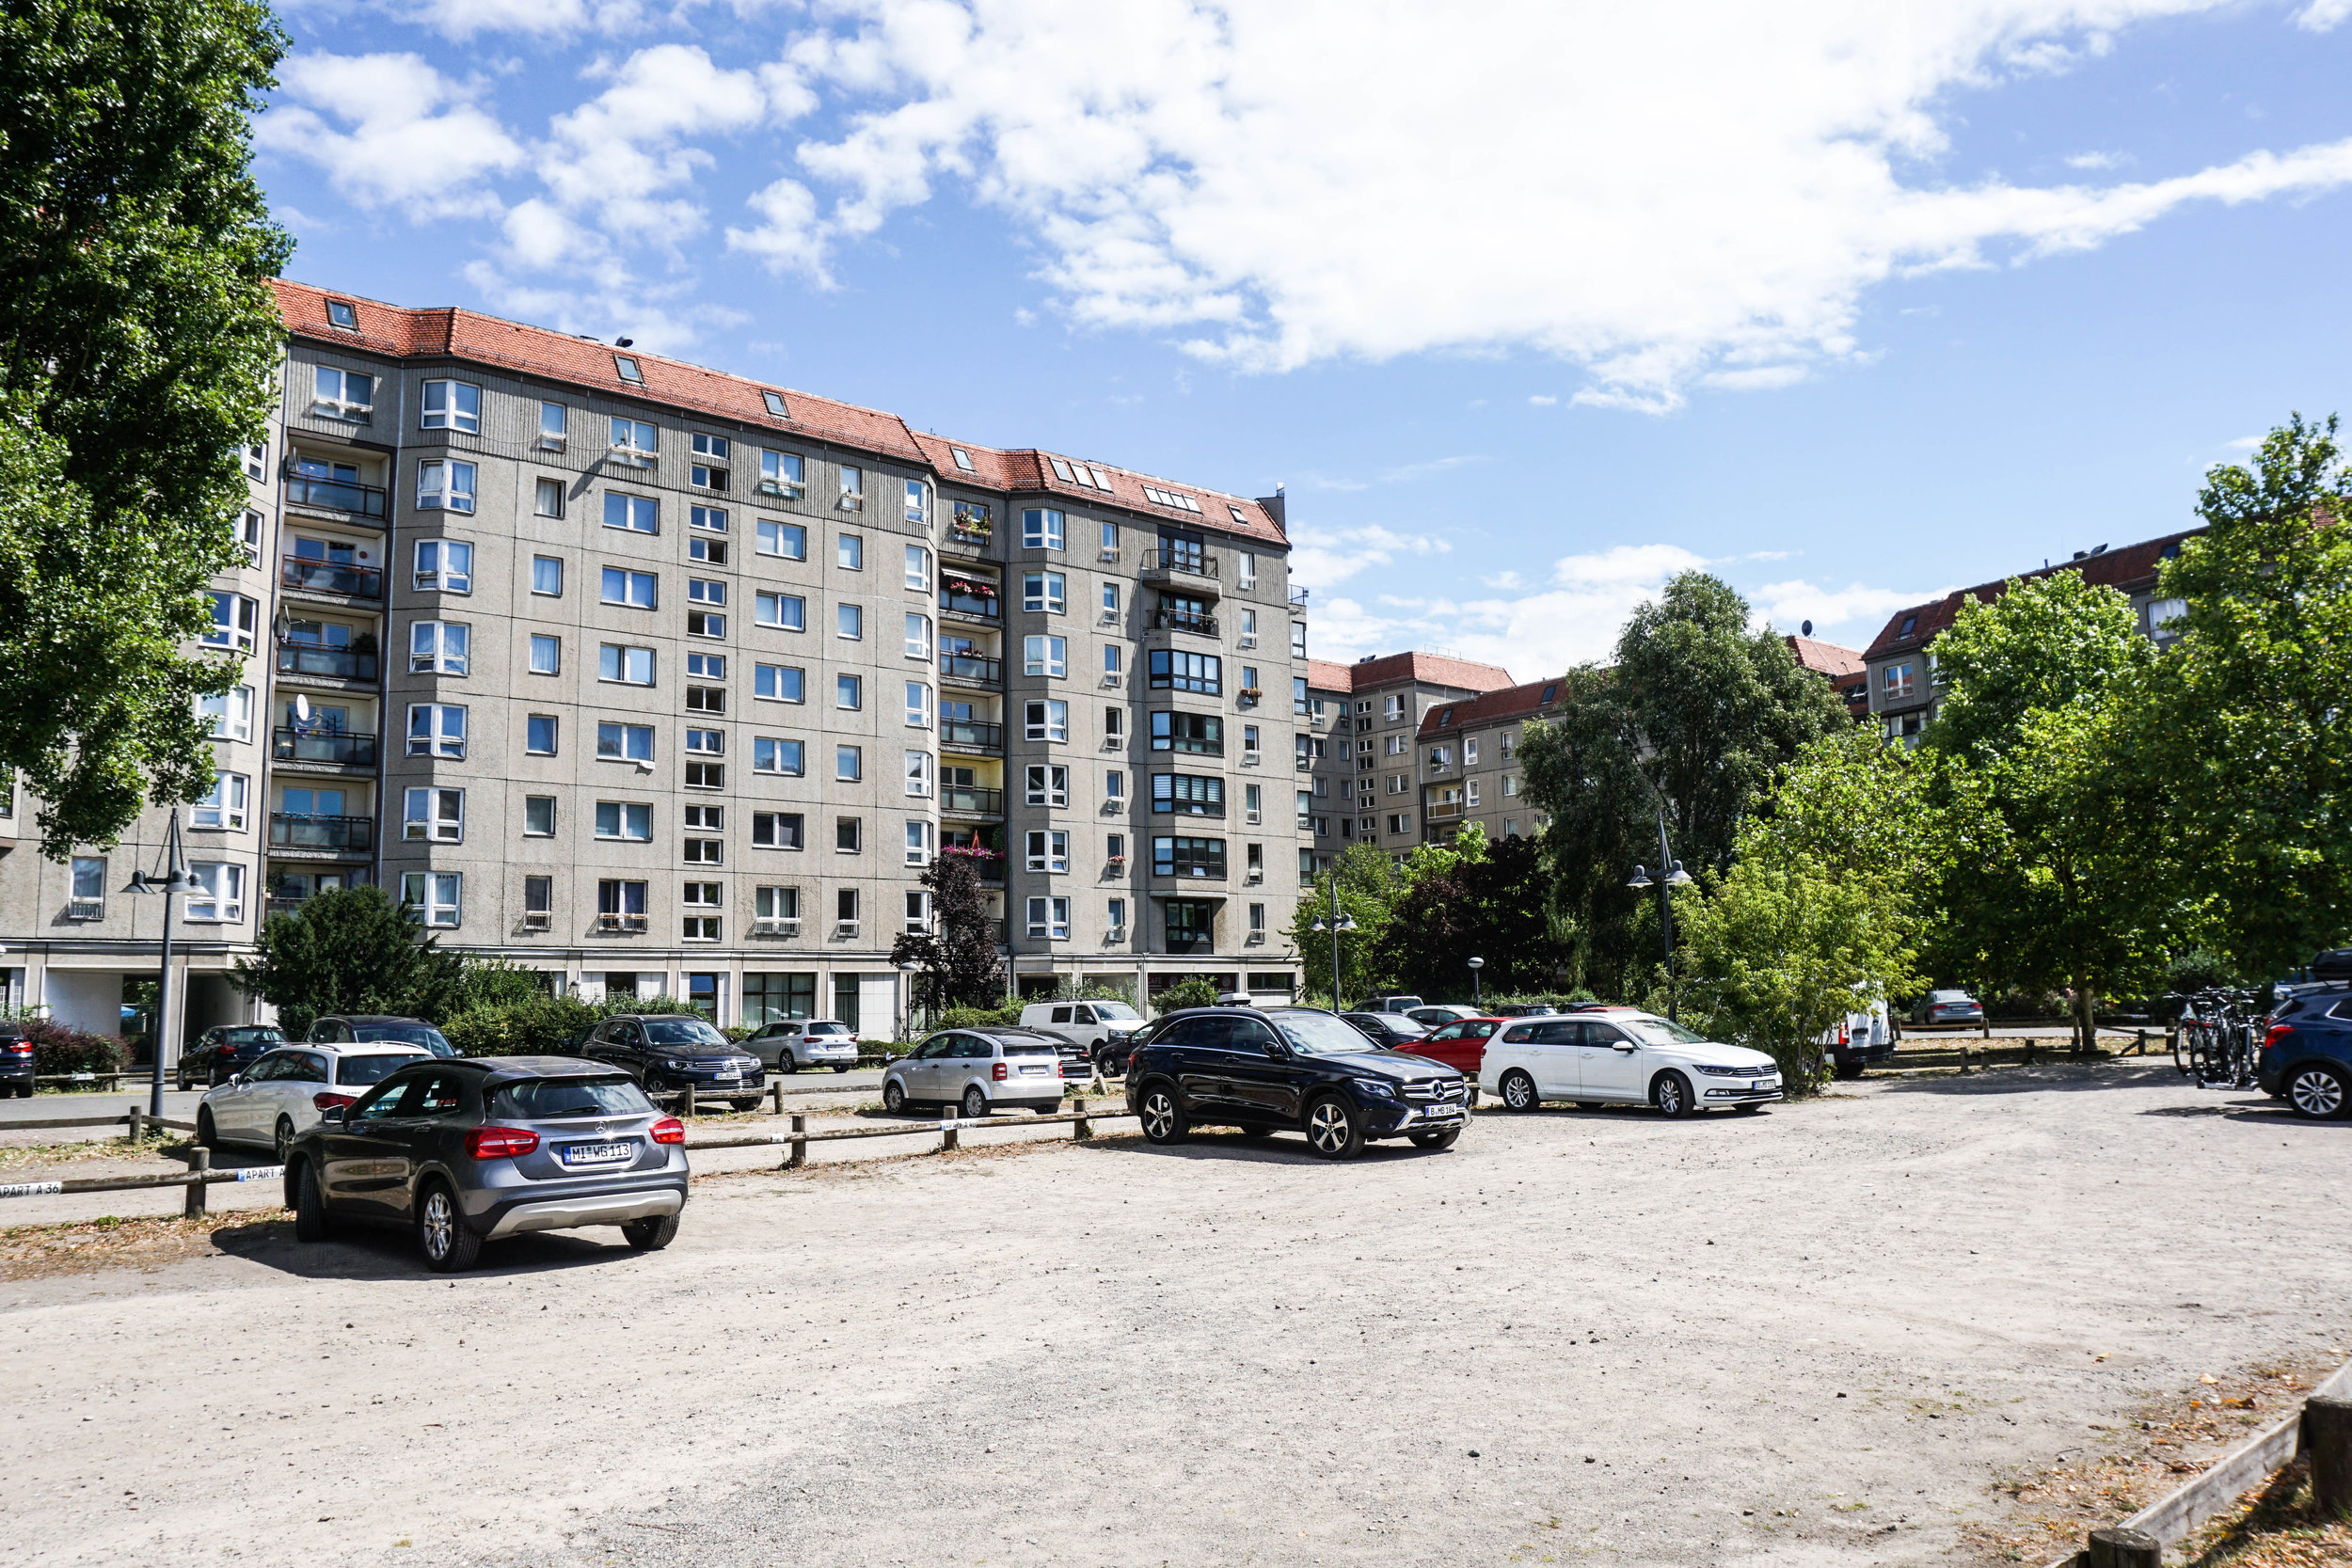 HItler's place of death and former bunker is a seemingly forgettable parking lot in central Berlin